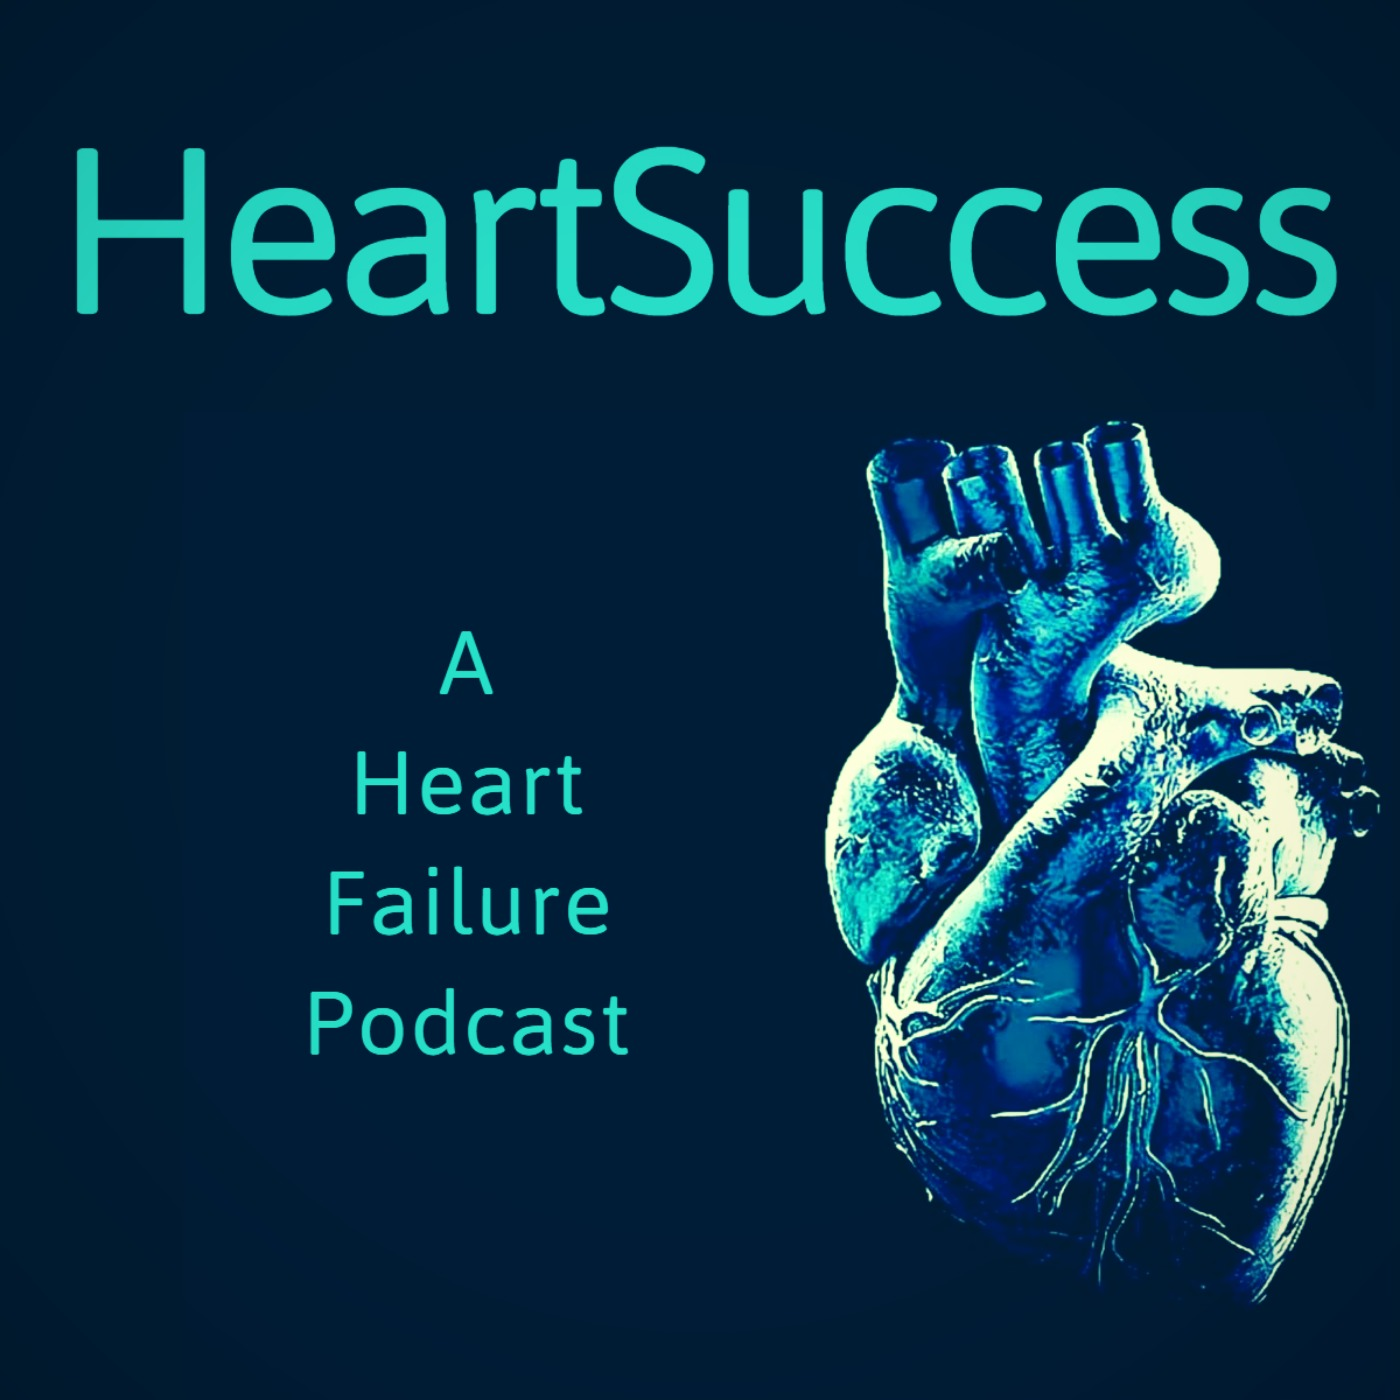 HeartSuccess Introduction